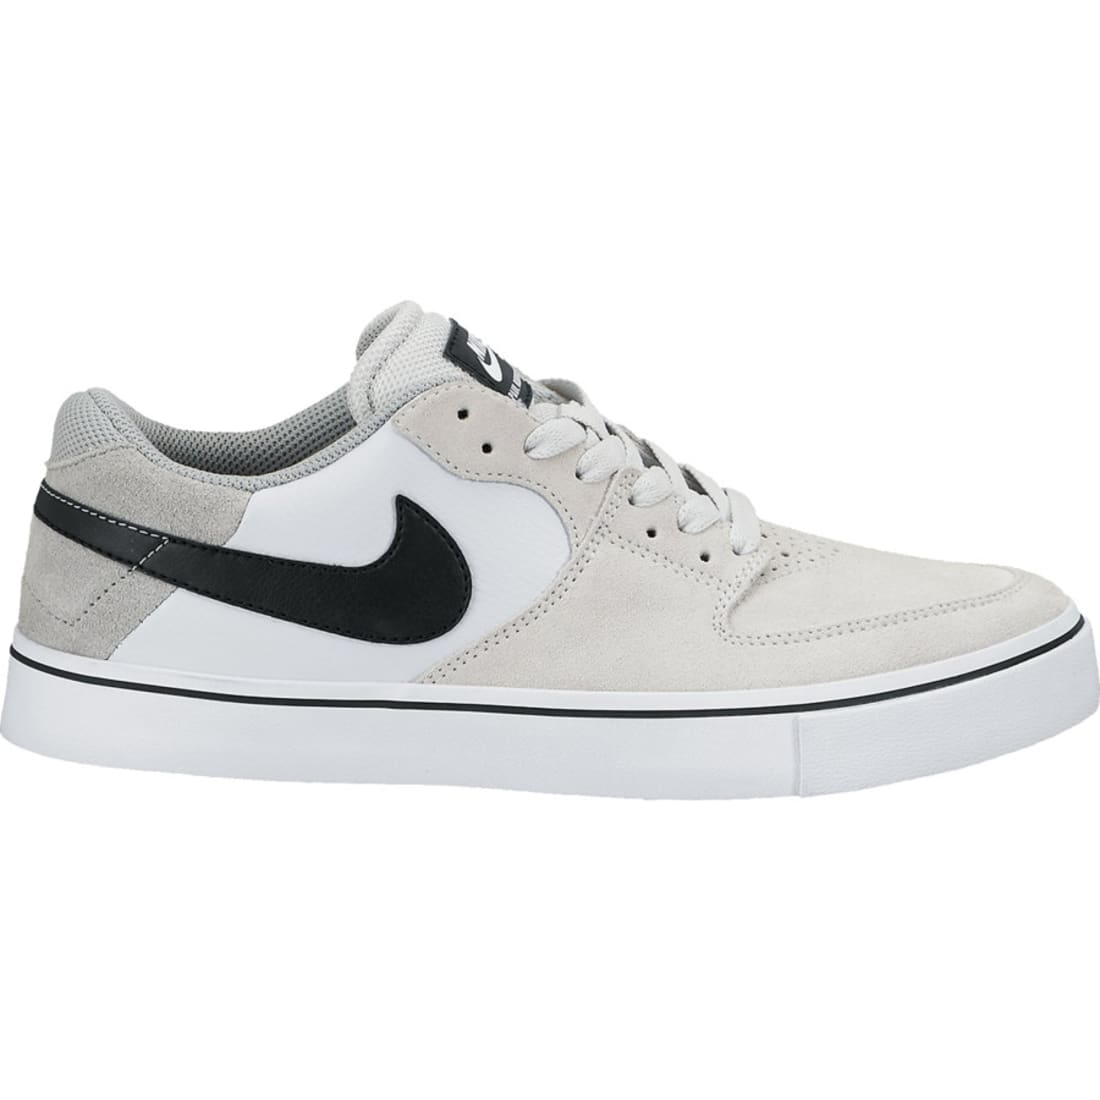 low priced 44bca 6a5e8 Nike SB Paul Rodriguez 7